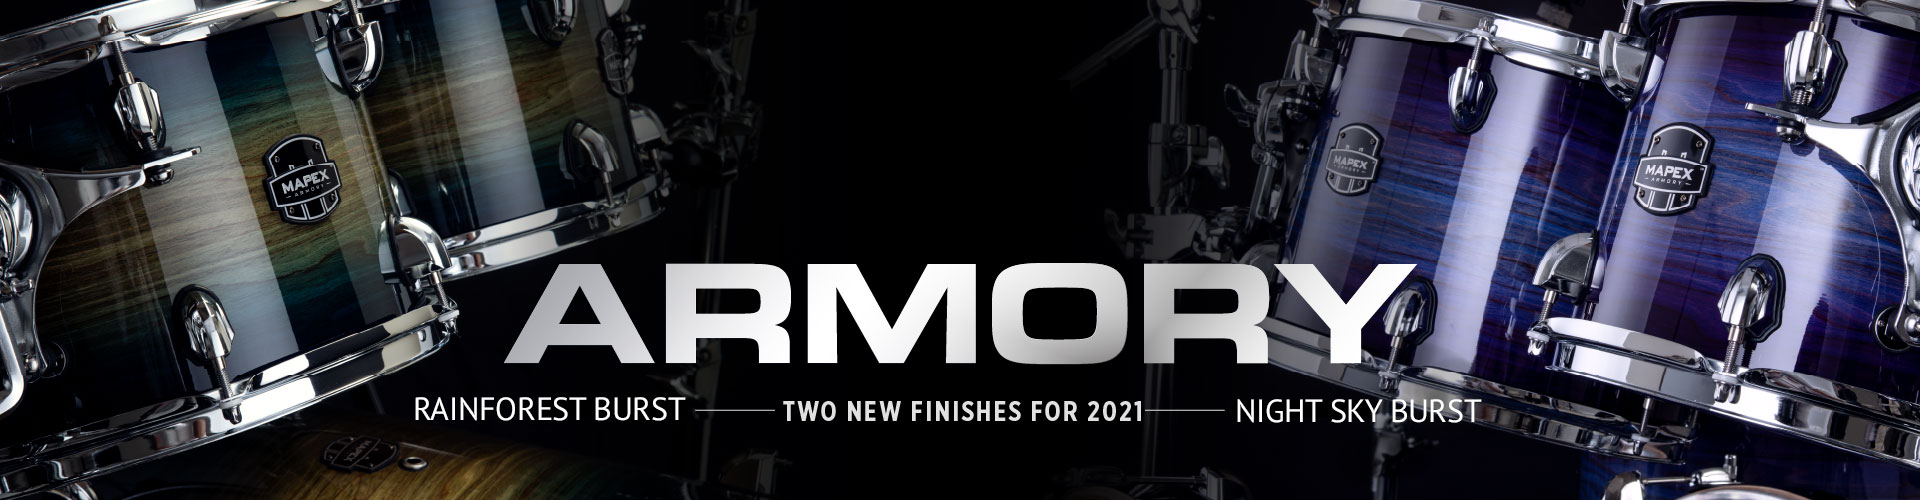 New Armory Colors 2021